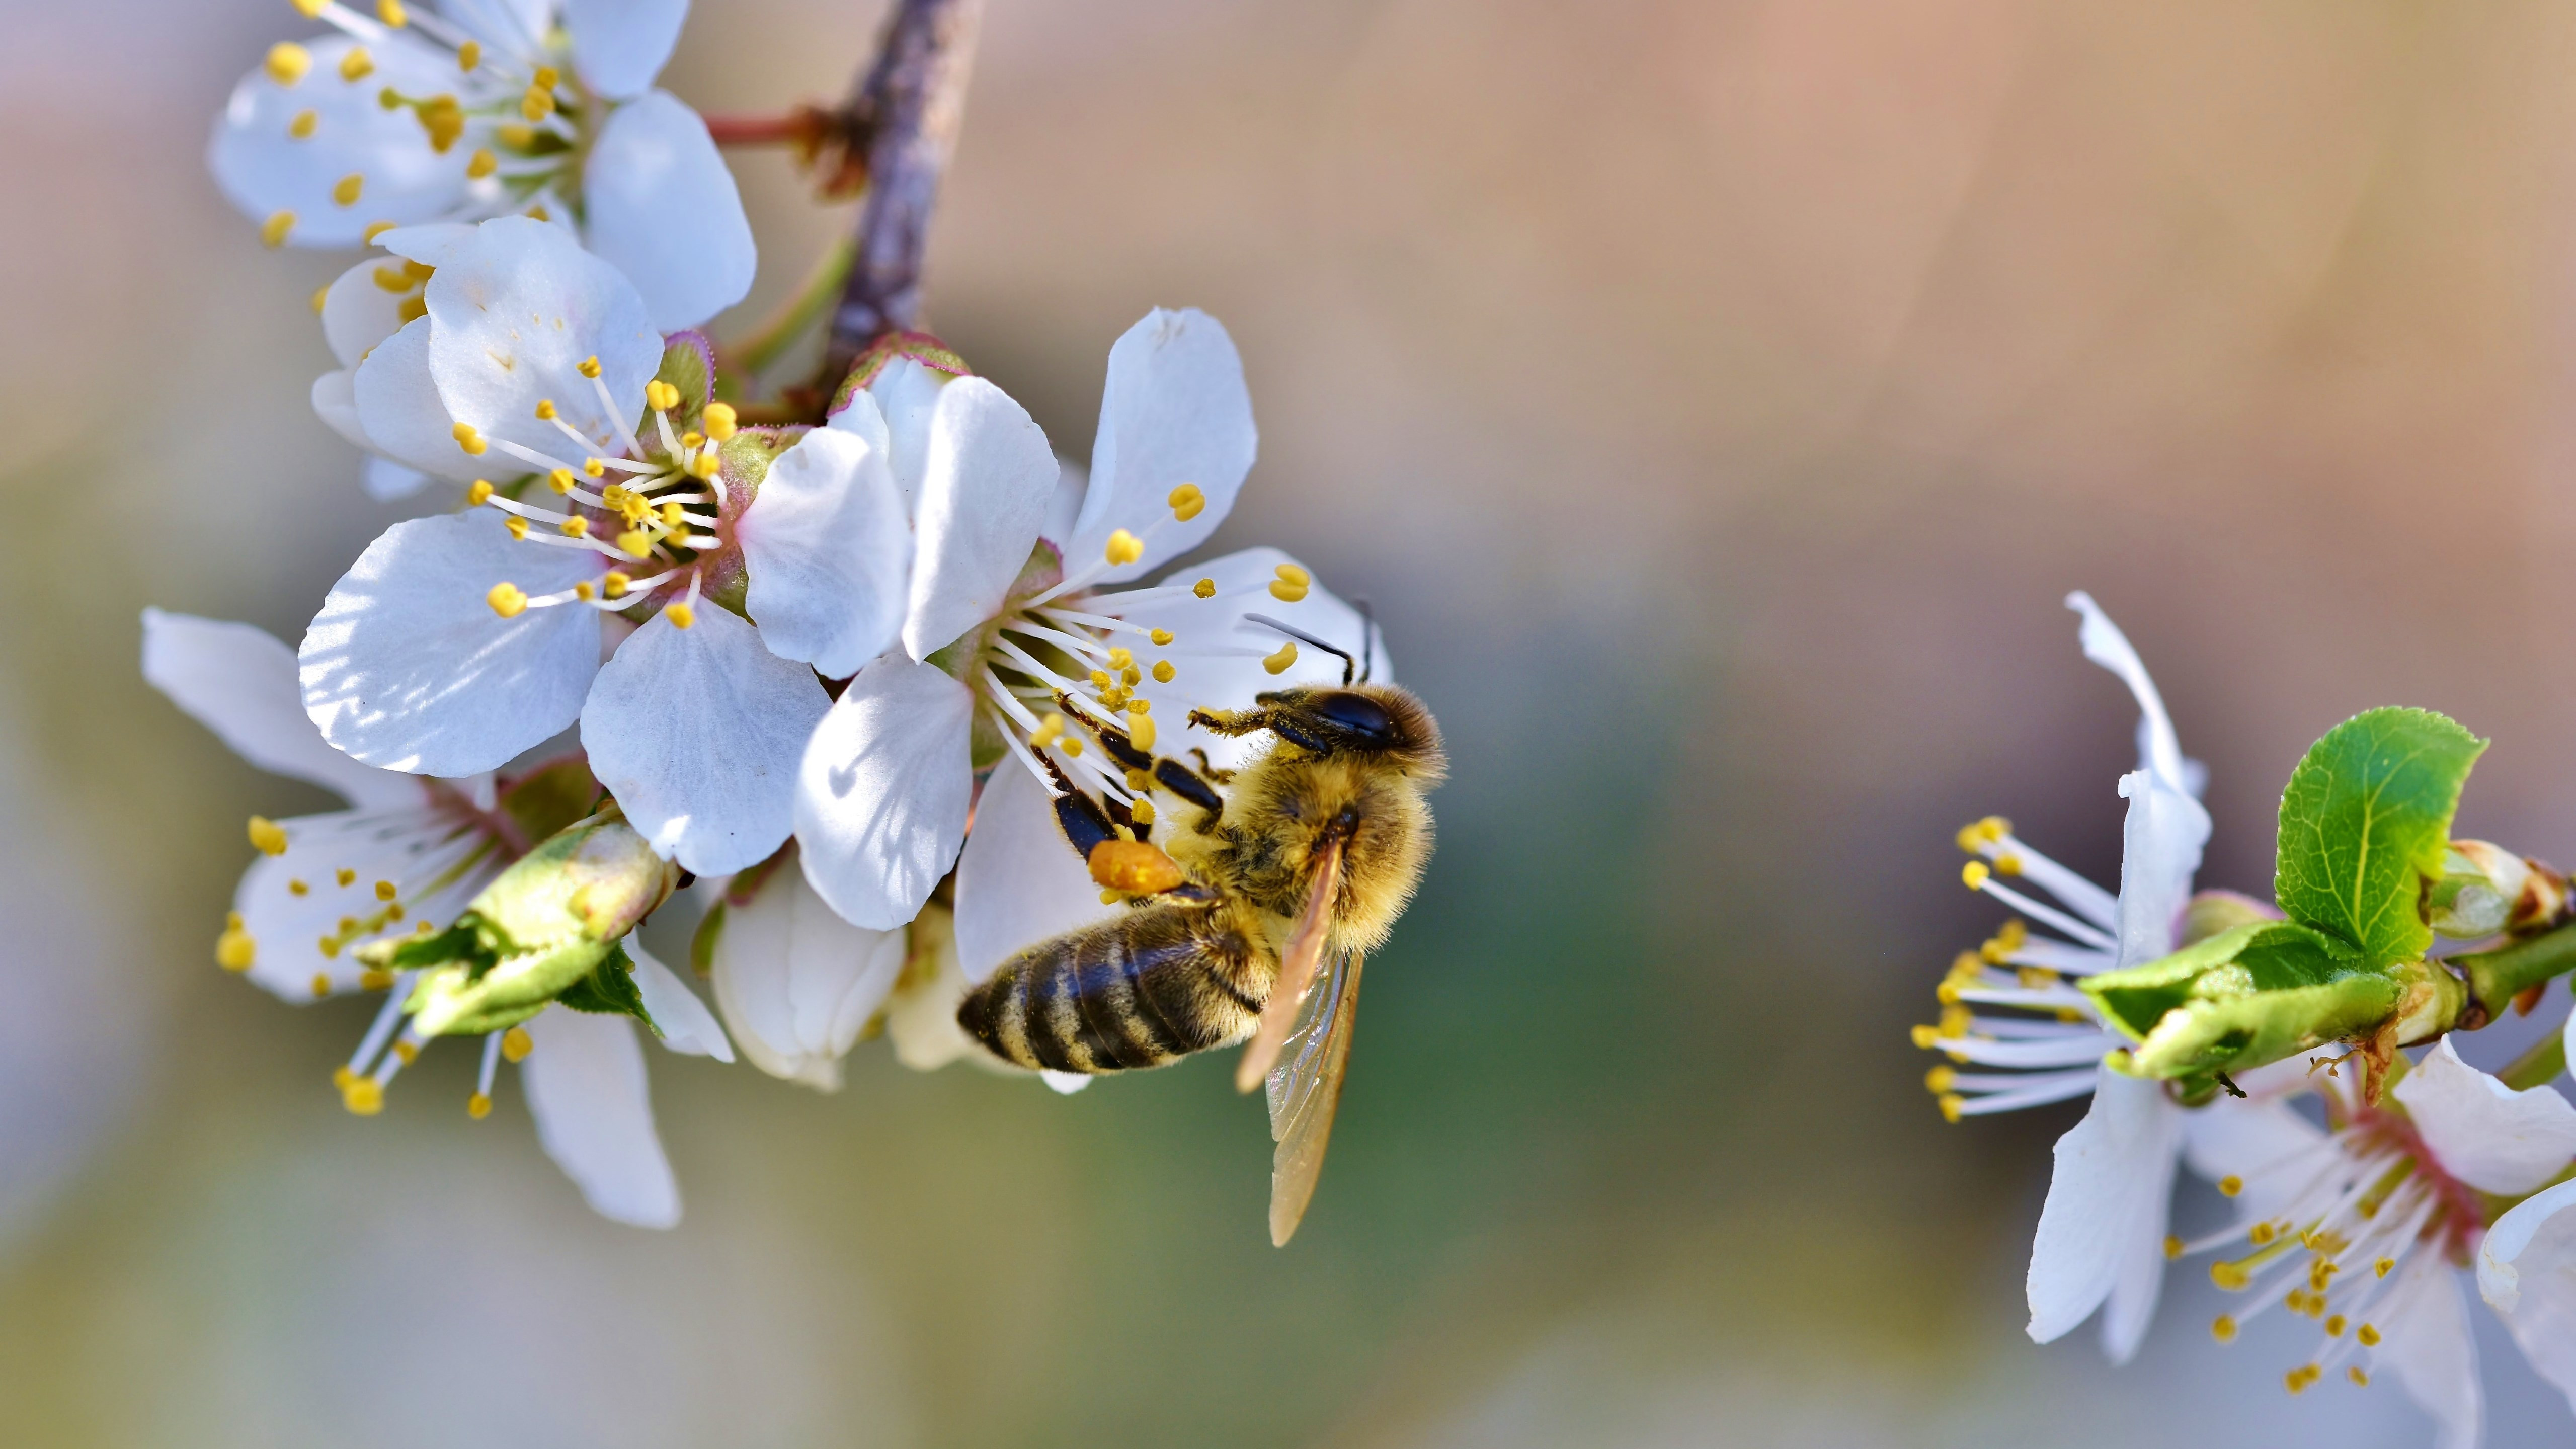 Spring, bee, blossoms, flower wallpaper 5120x2880